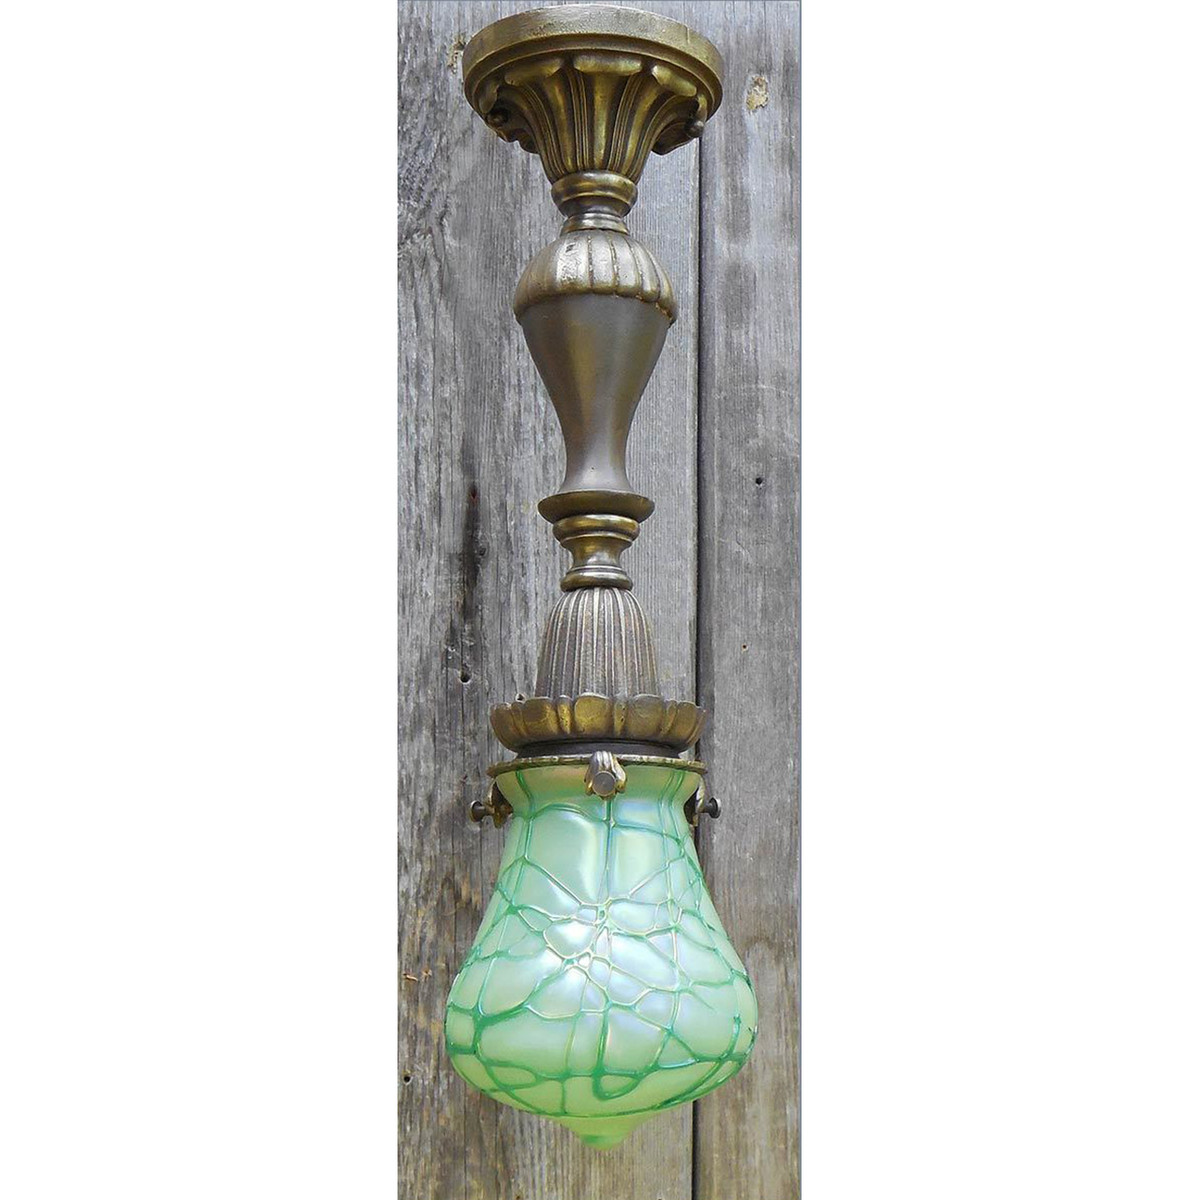 L14289 - Antique Revival Period Pendant Fixture with Art Glass